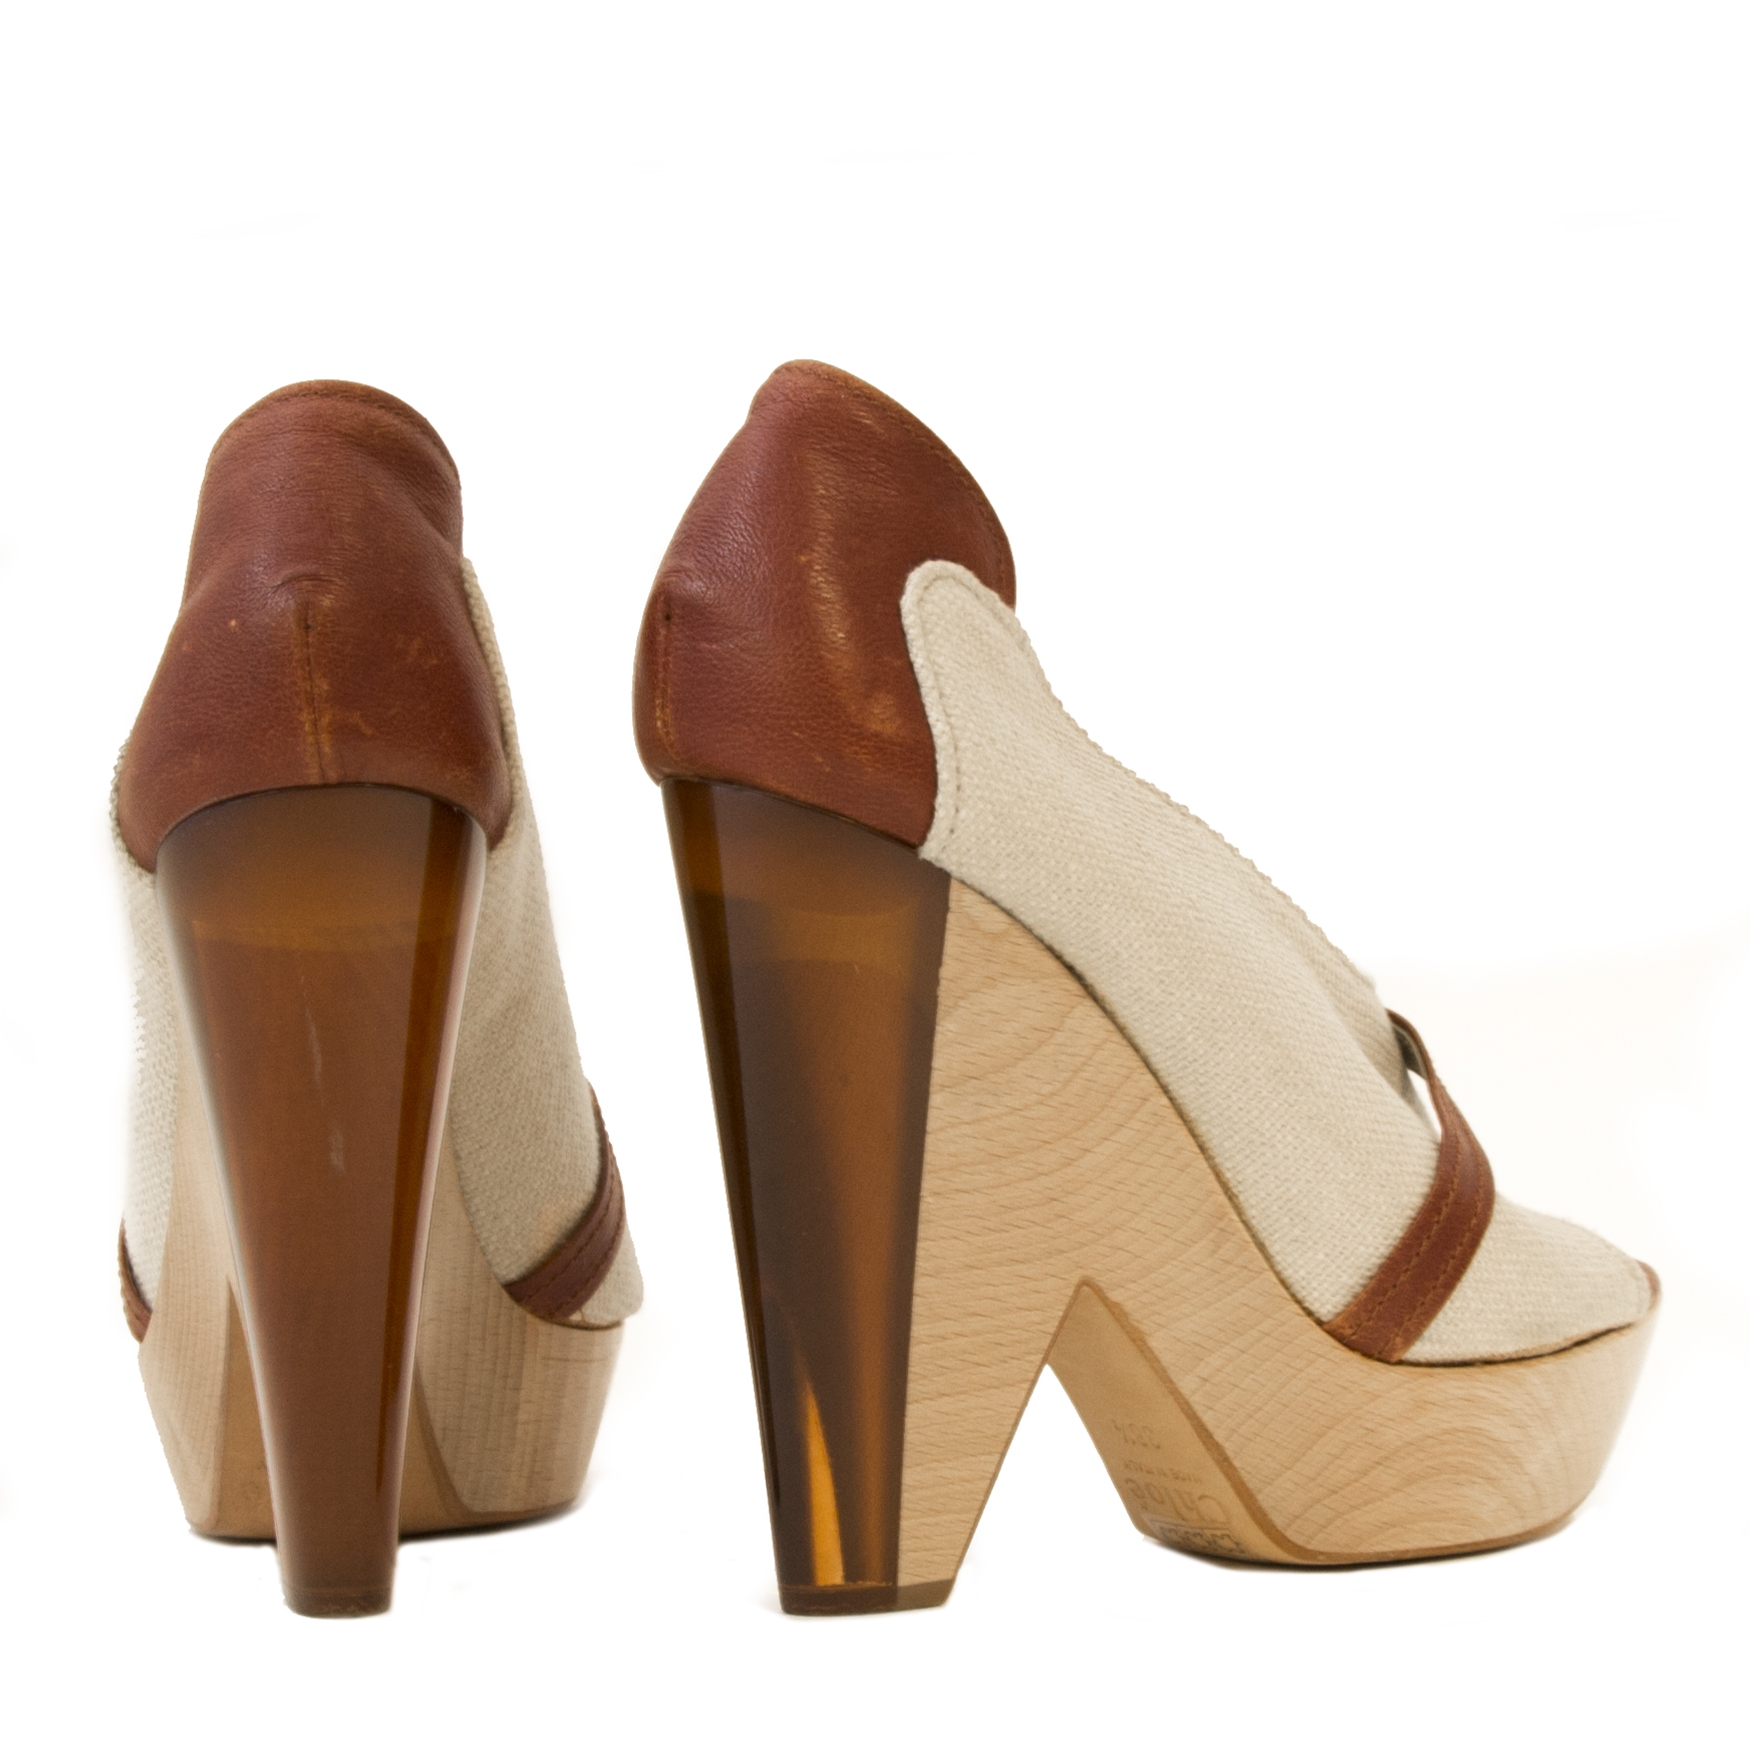 Chloé Beige Lucite Wooden Wedges- Size 38,5